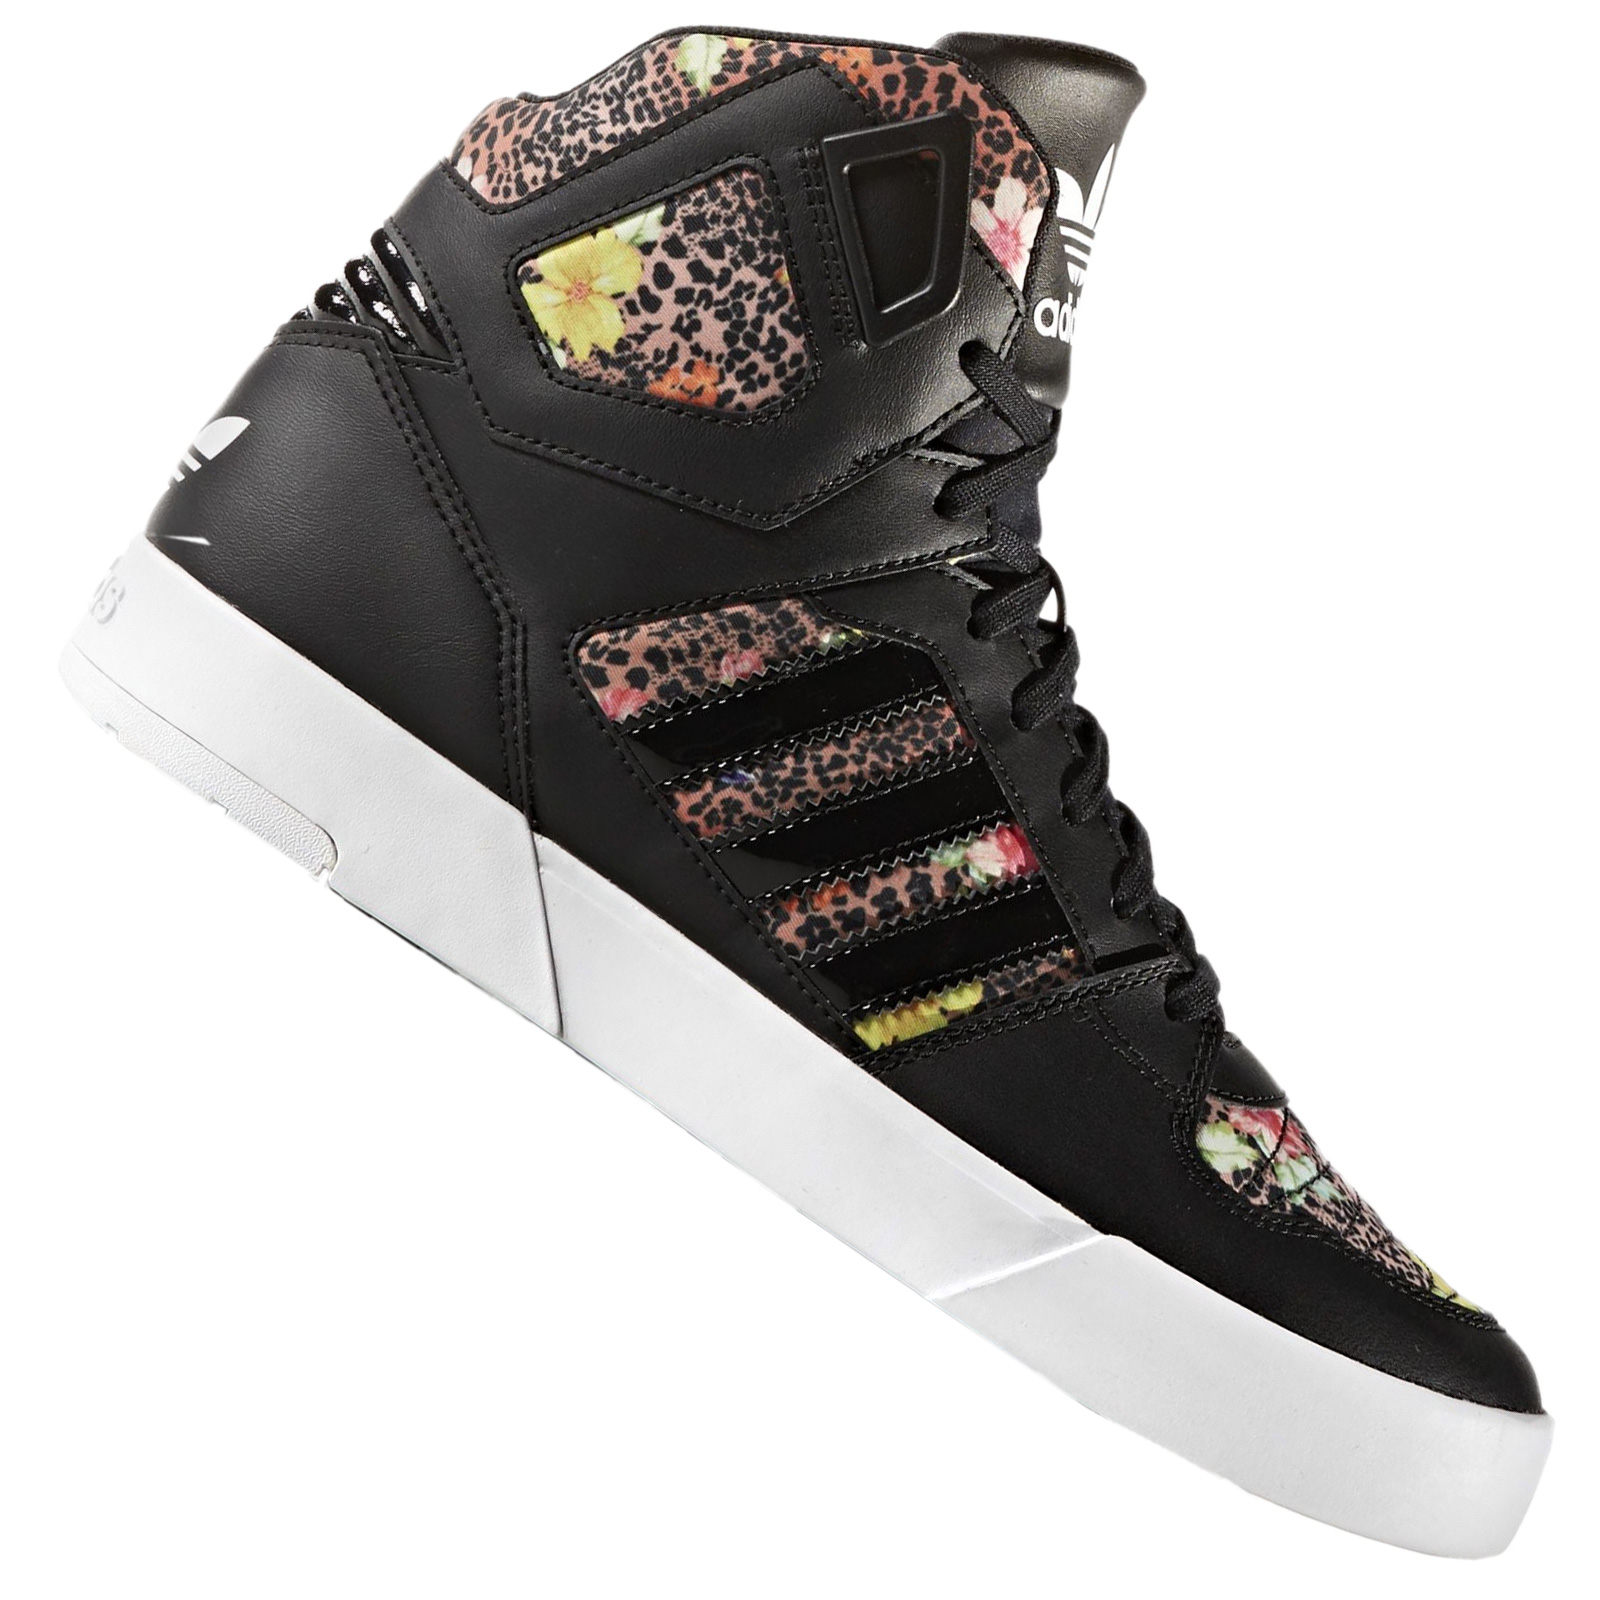 Details about Adidas Originals x the Farm Zestra Hi Top Trainers Oncada Jaguar Leopard Flowers